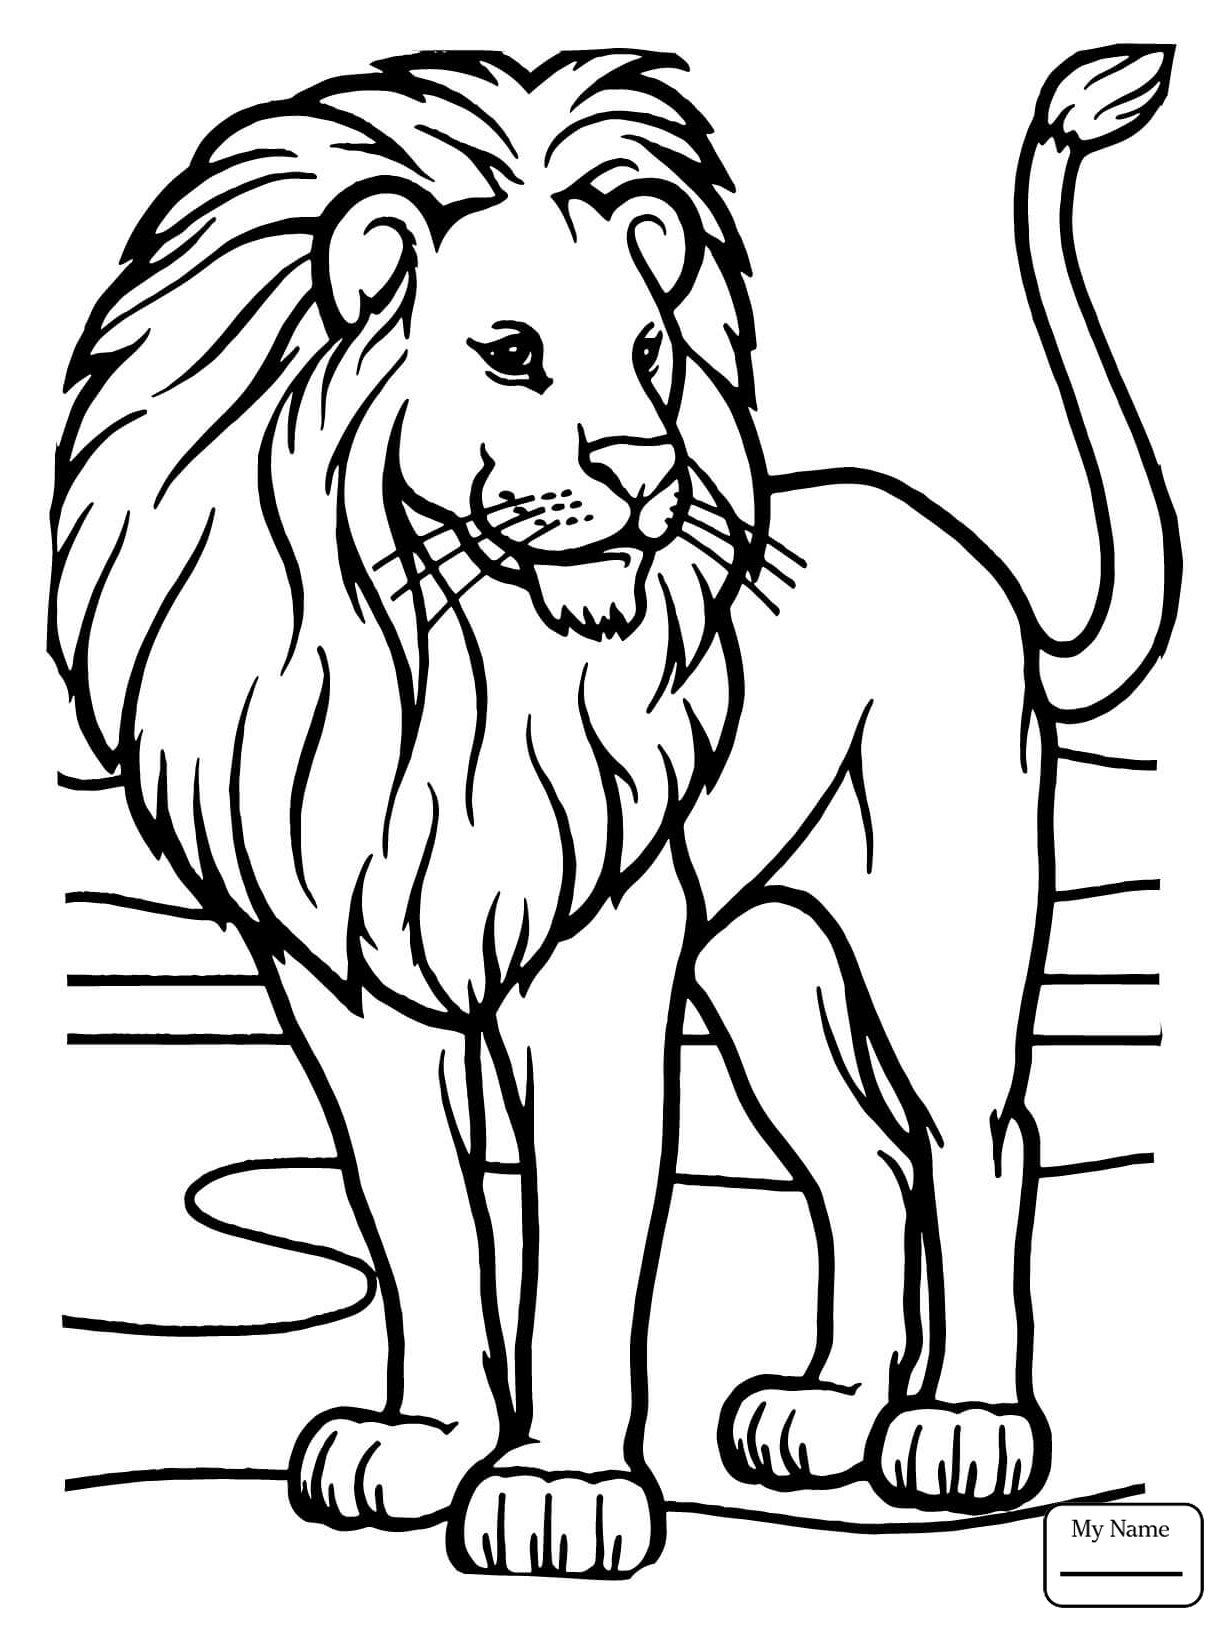 Lions Drawing For Kids at GetDrawings.com | Free for personal use ...